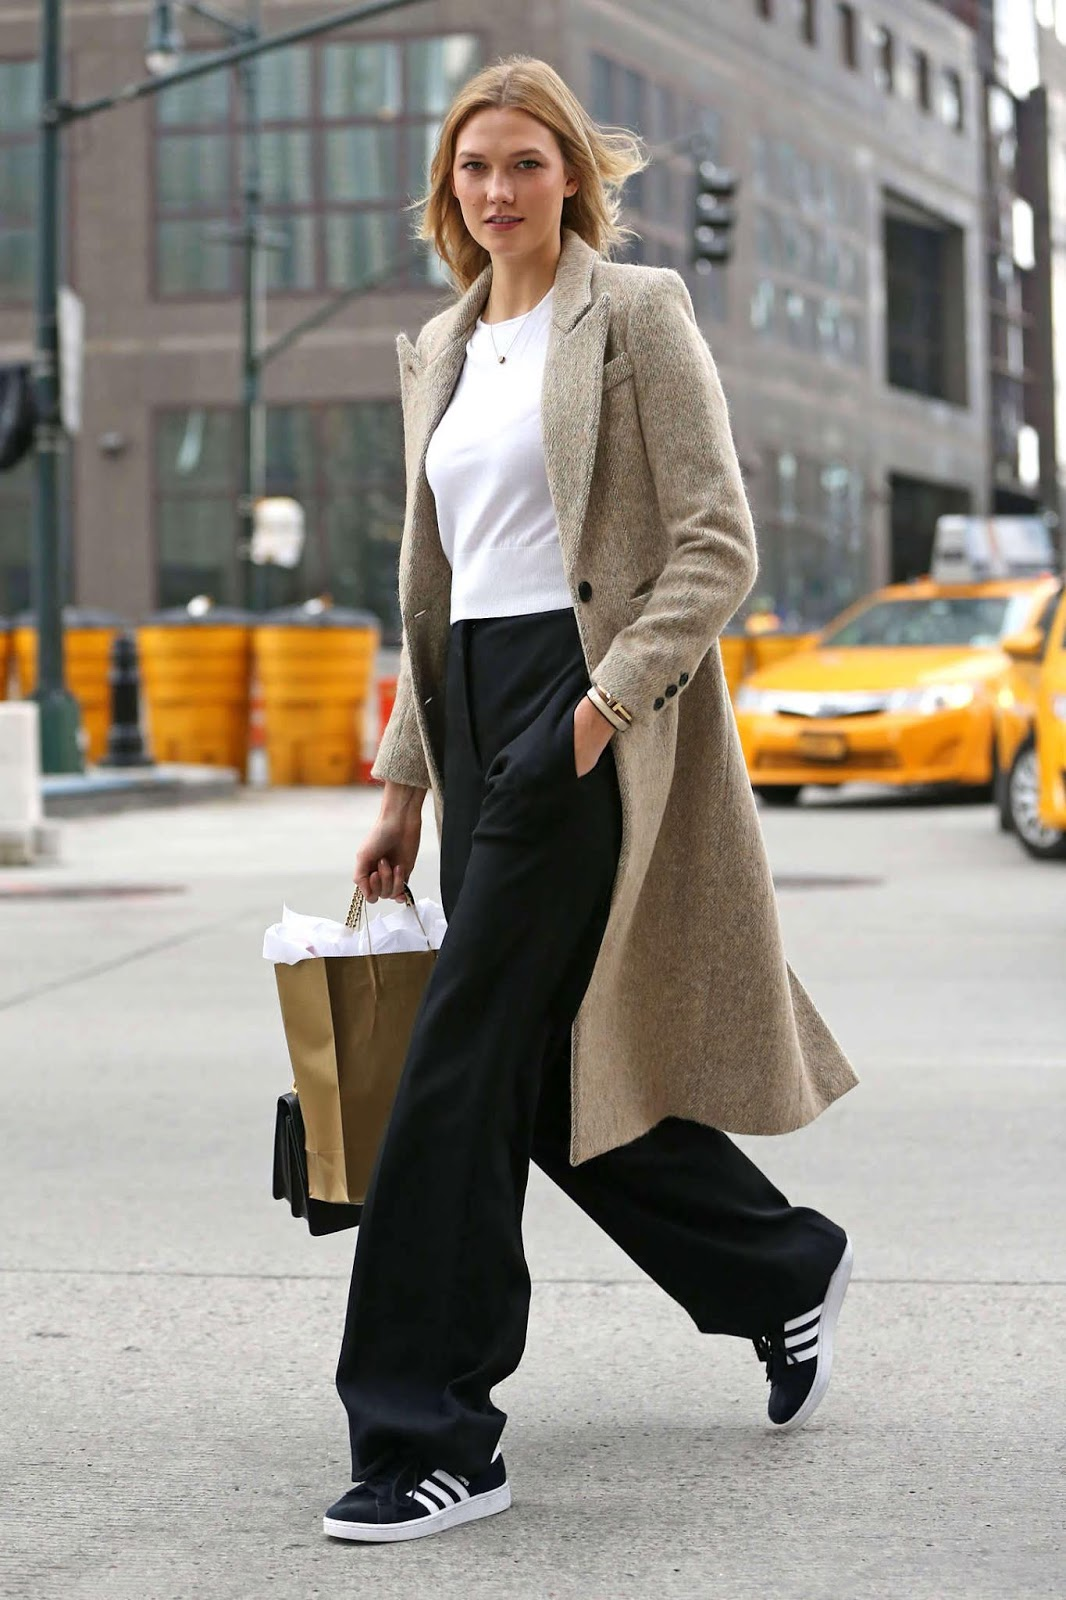 Spring Transitional Outfit Idea — Karlie Kloss in a beige coat, white sweater, black wide-leg pants, and Adidas sneakers